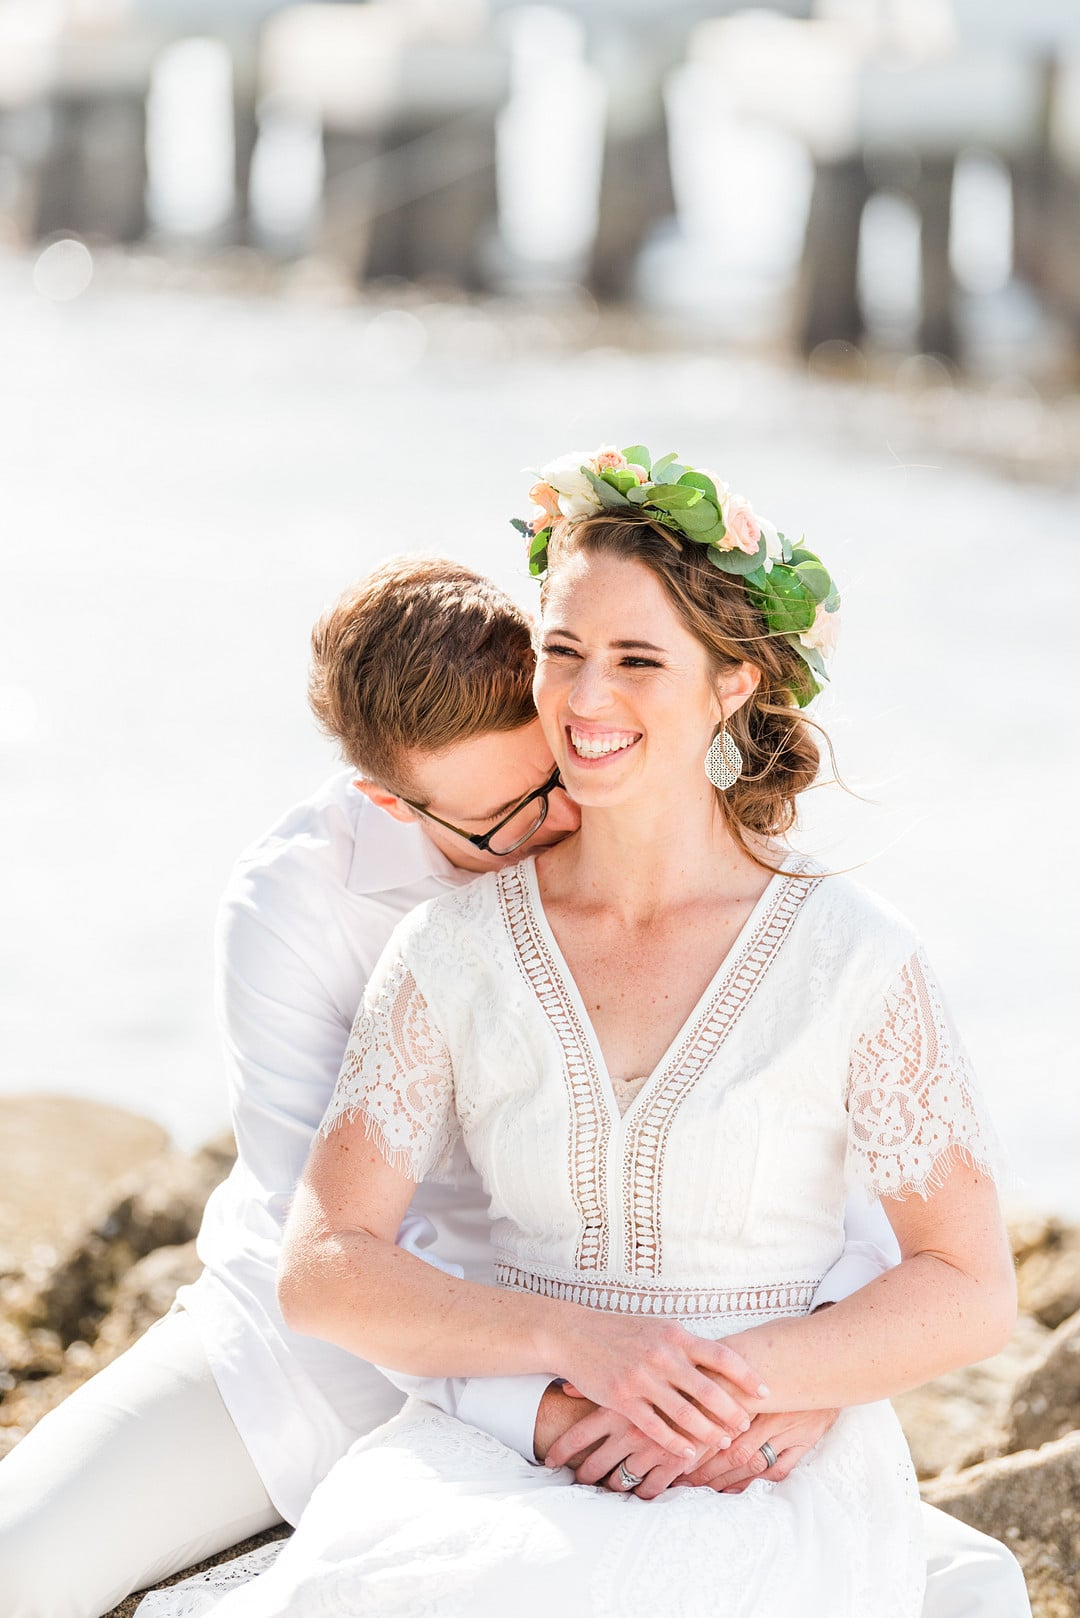 Romantic, Spring Styled Wedding with Horses on the Beach_Christine Austin Photography_©christineaustinphotography_2021_RomanticBeachStyledShoot_Austin+Naomi_28_low